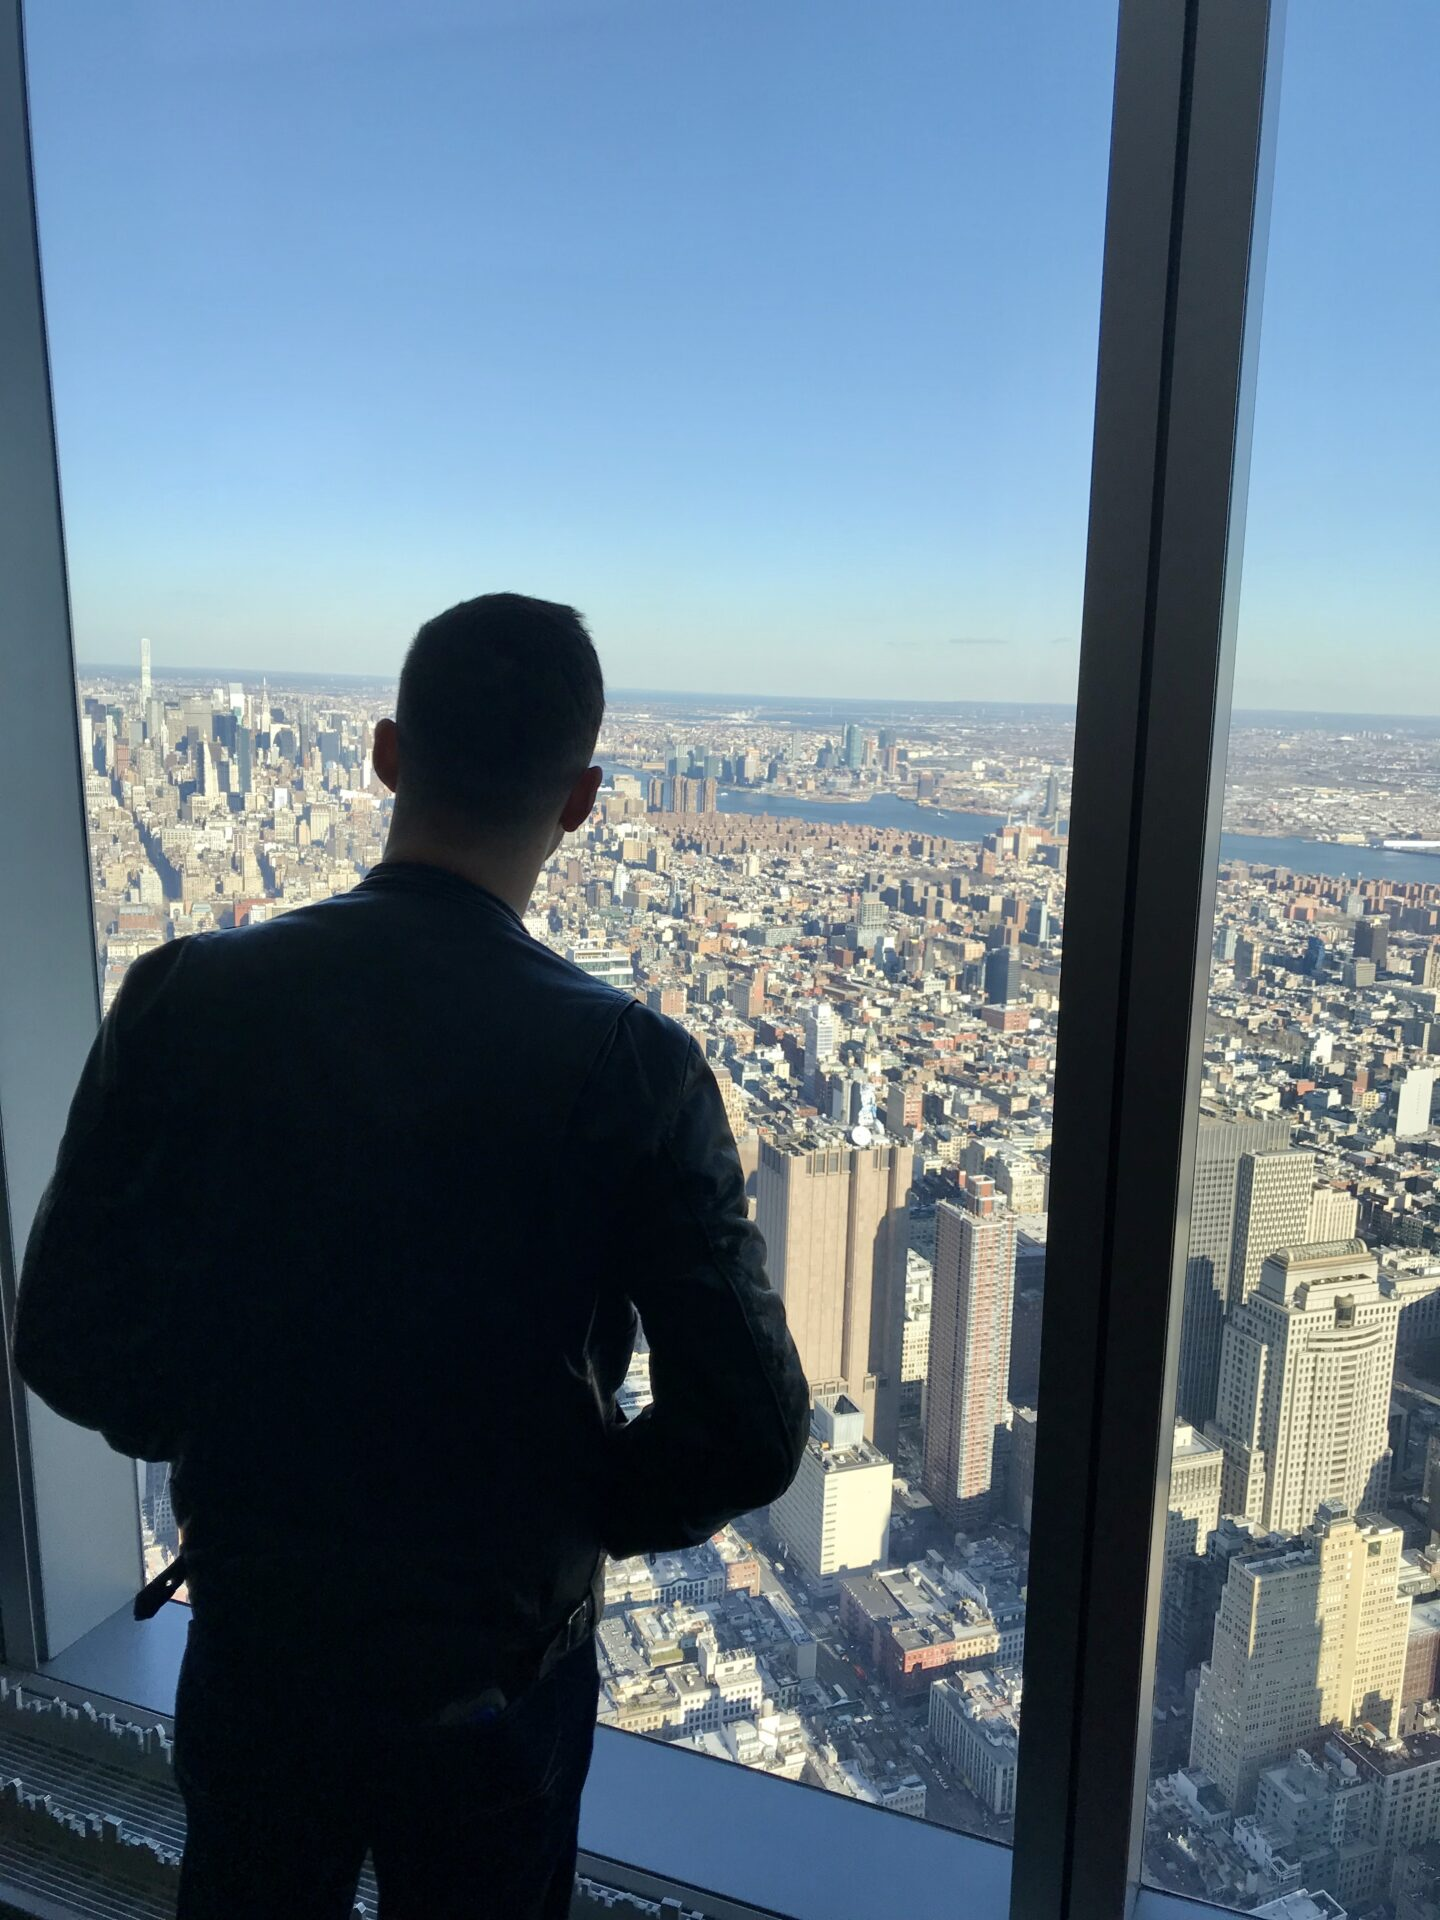 Freedom Tower 100th floor observatory view